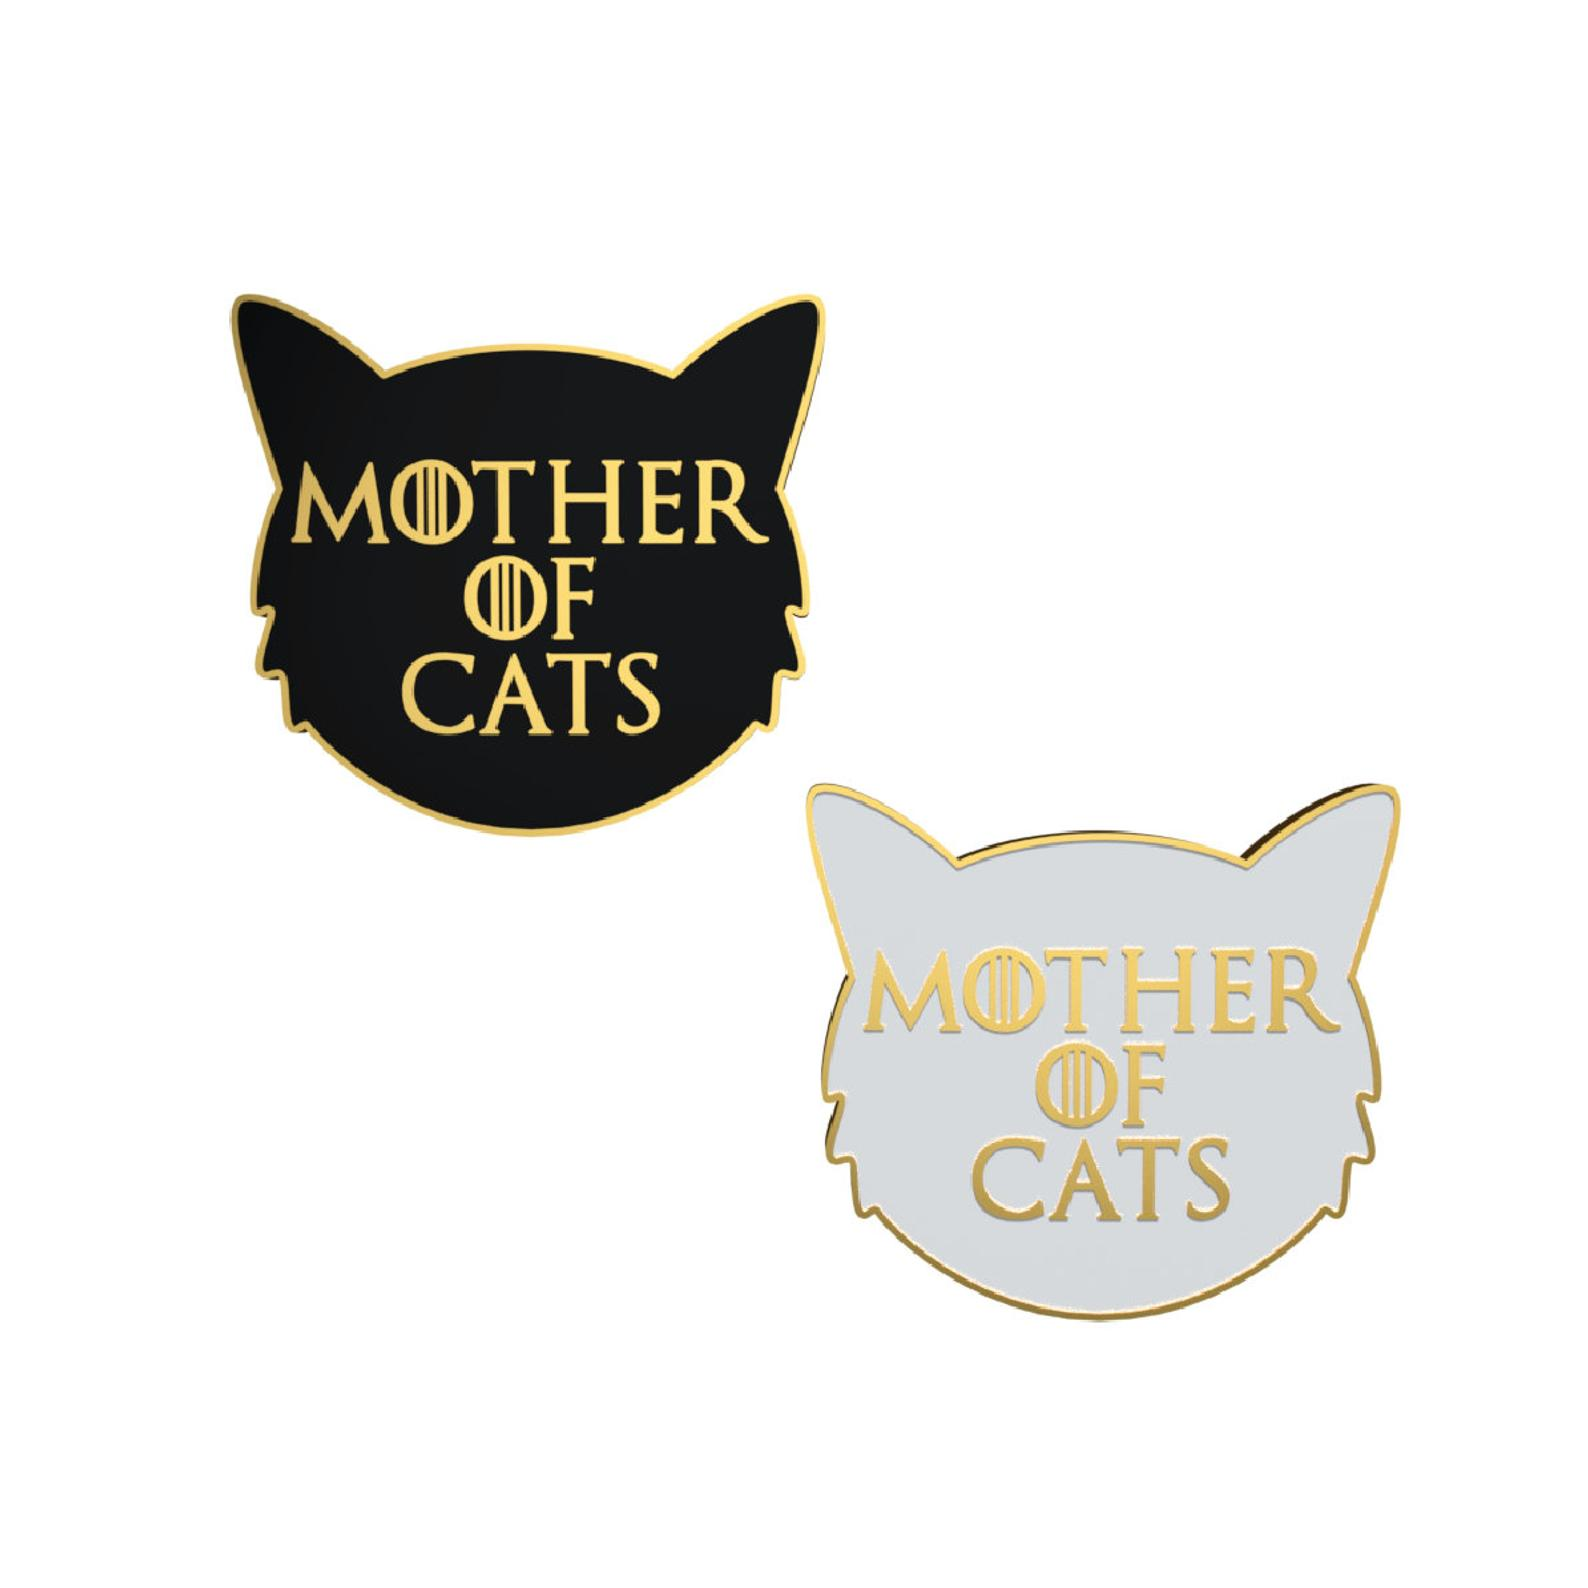 Mother of Cats - Enamel Pin